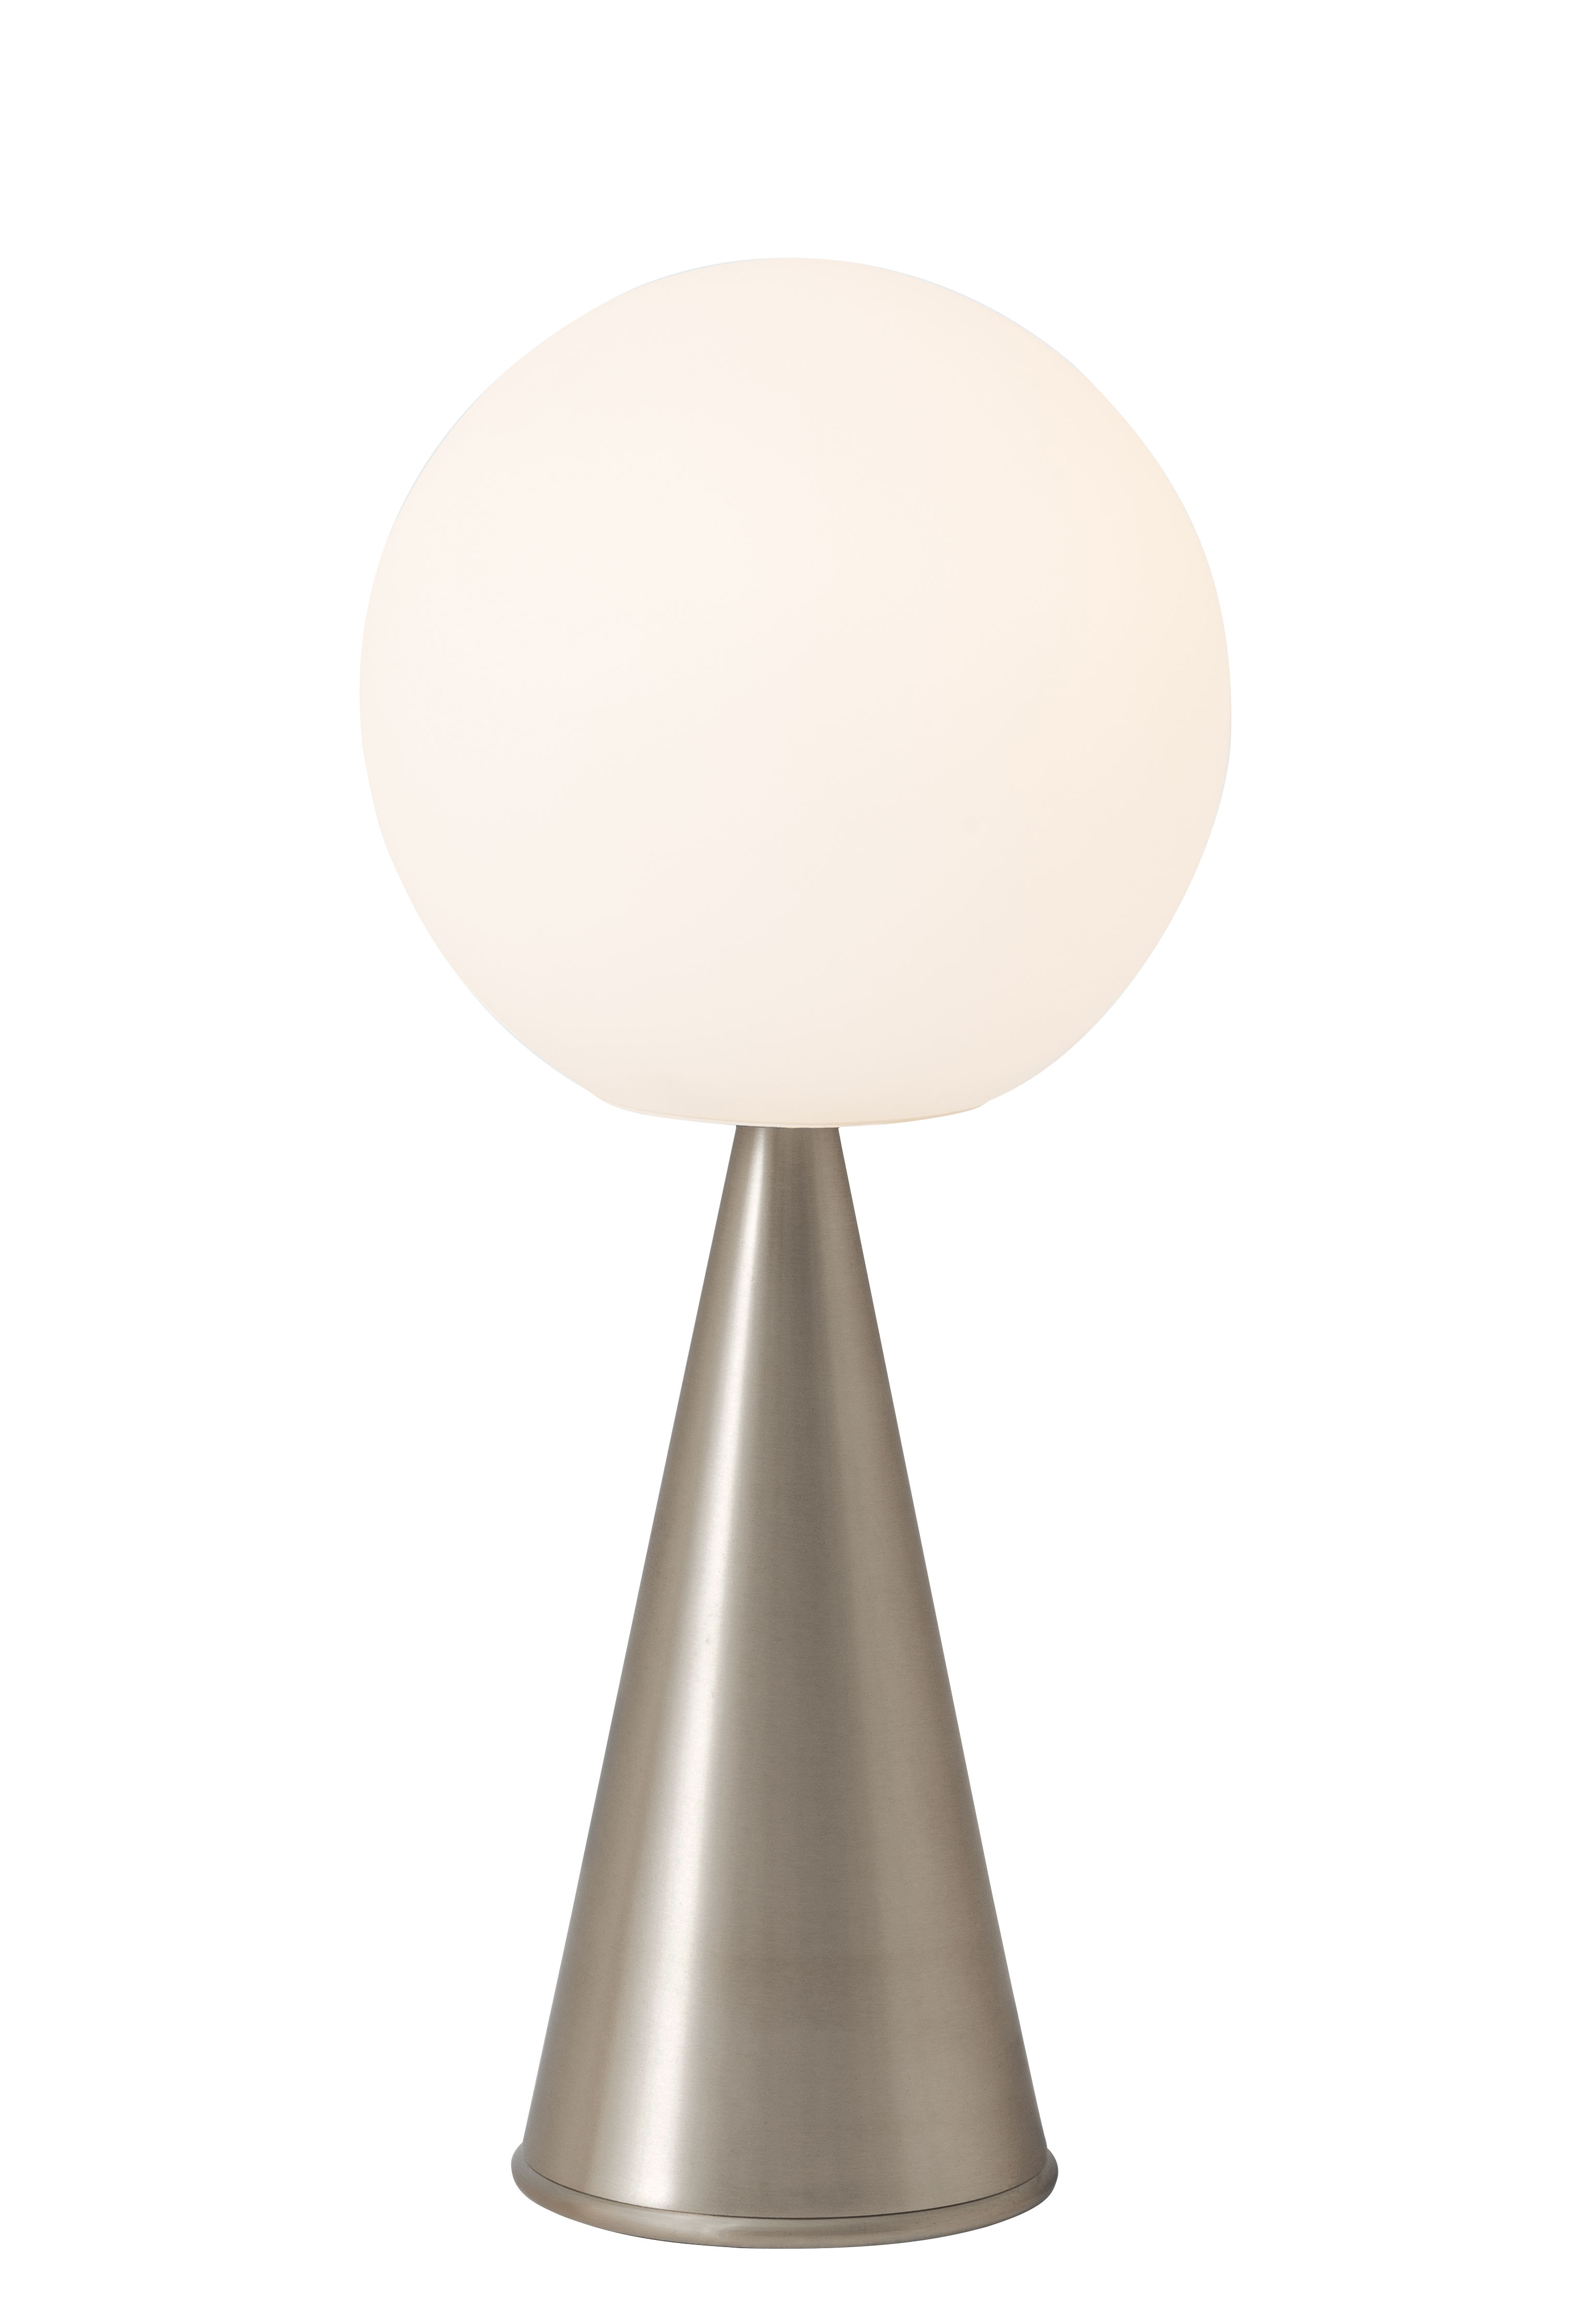 Lighting - Table Lamps - Bilia Table lamp - / H 43 cm - By Gio Ponti (1932) by Fontana Arte - Nickel - Brushed nickel-plated metal, Satin blown glass